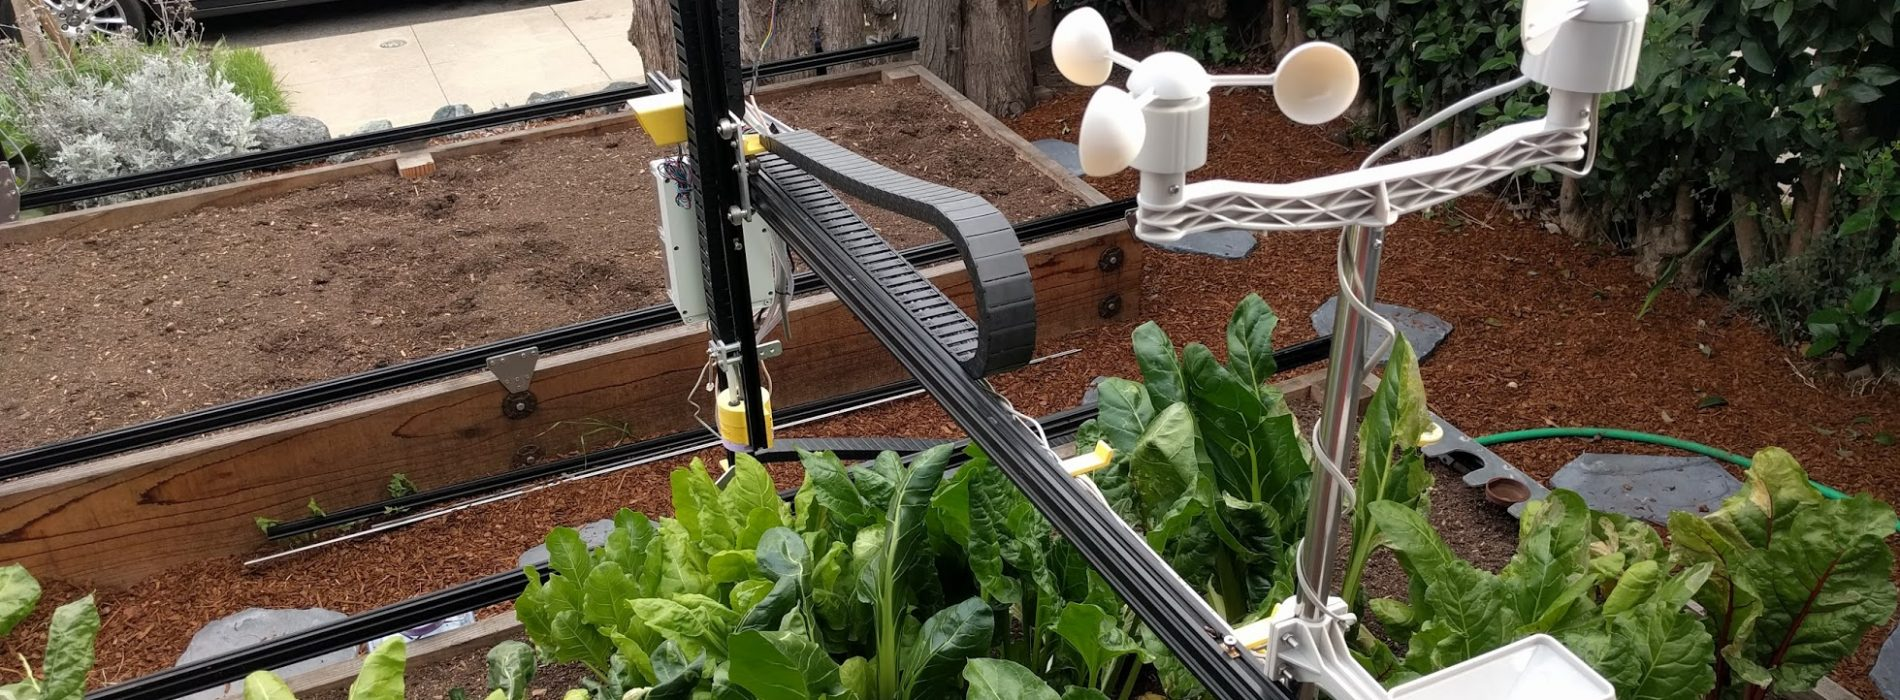 Your Robot Gardener Has Arrived